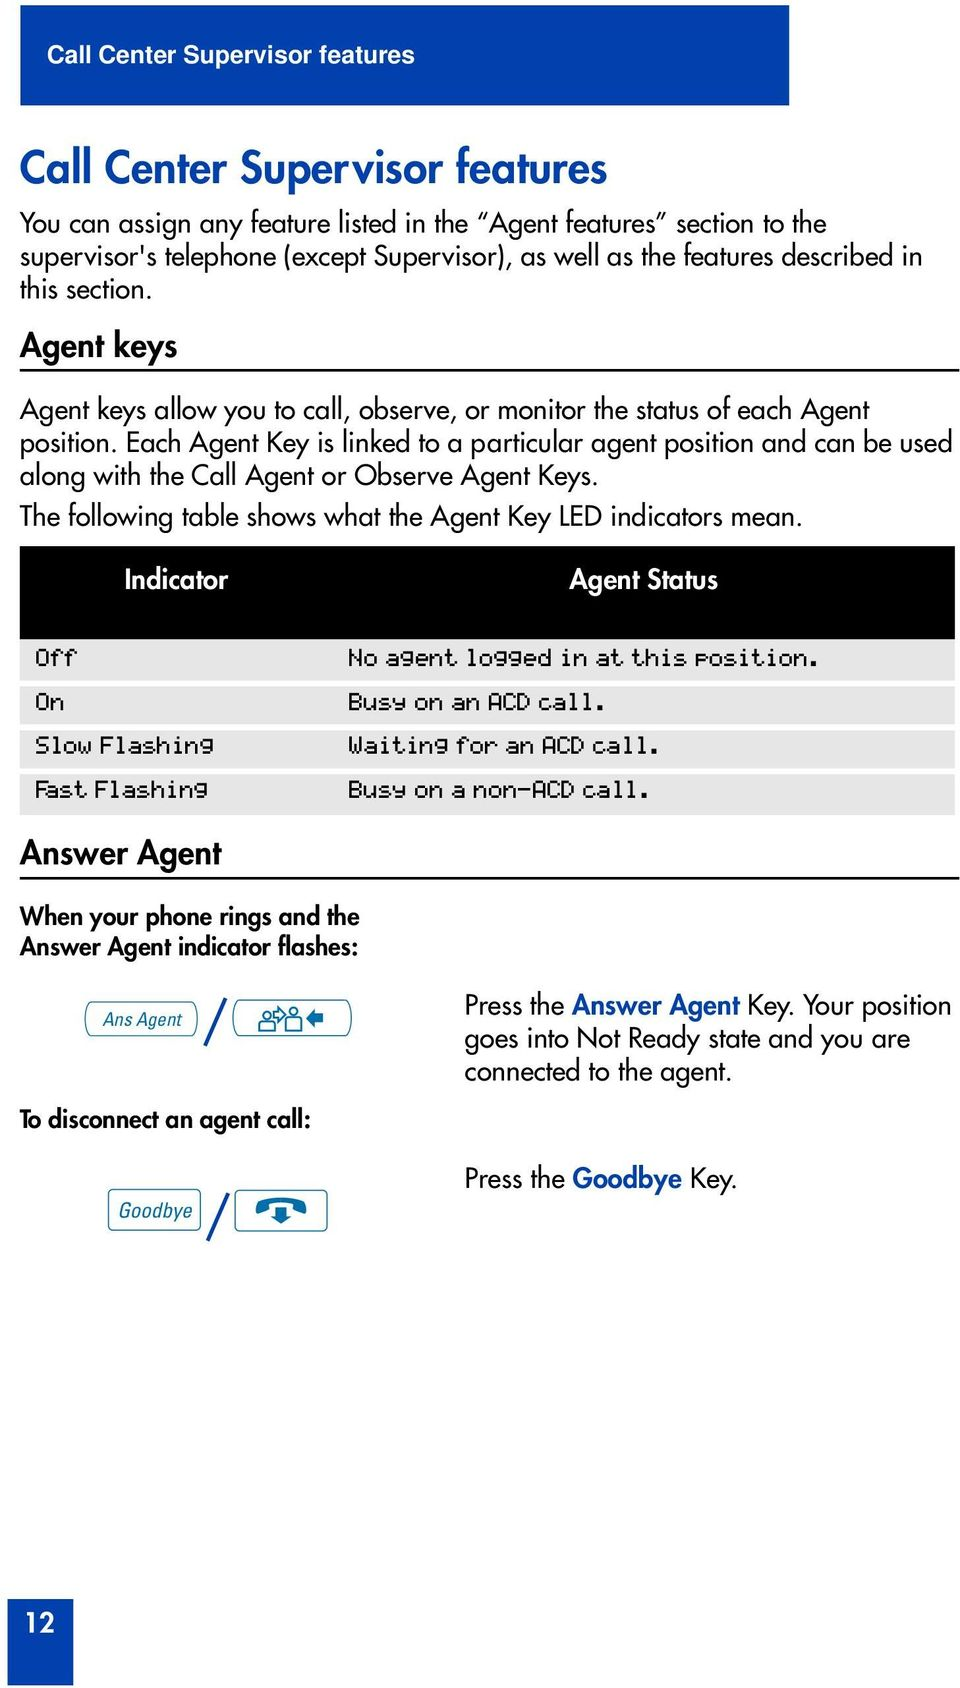 Each Agent Key is linked to a particular agent position and can be used along with the Call Agent or Observe Agent Keys. The following table shows what the Agent Key LED indicators mean.